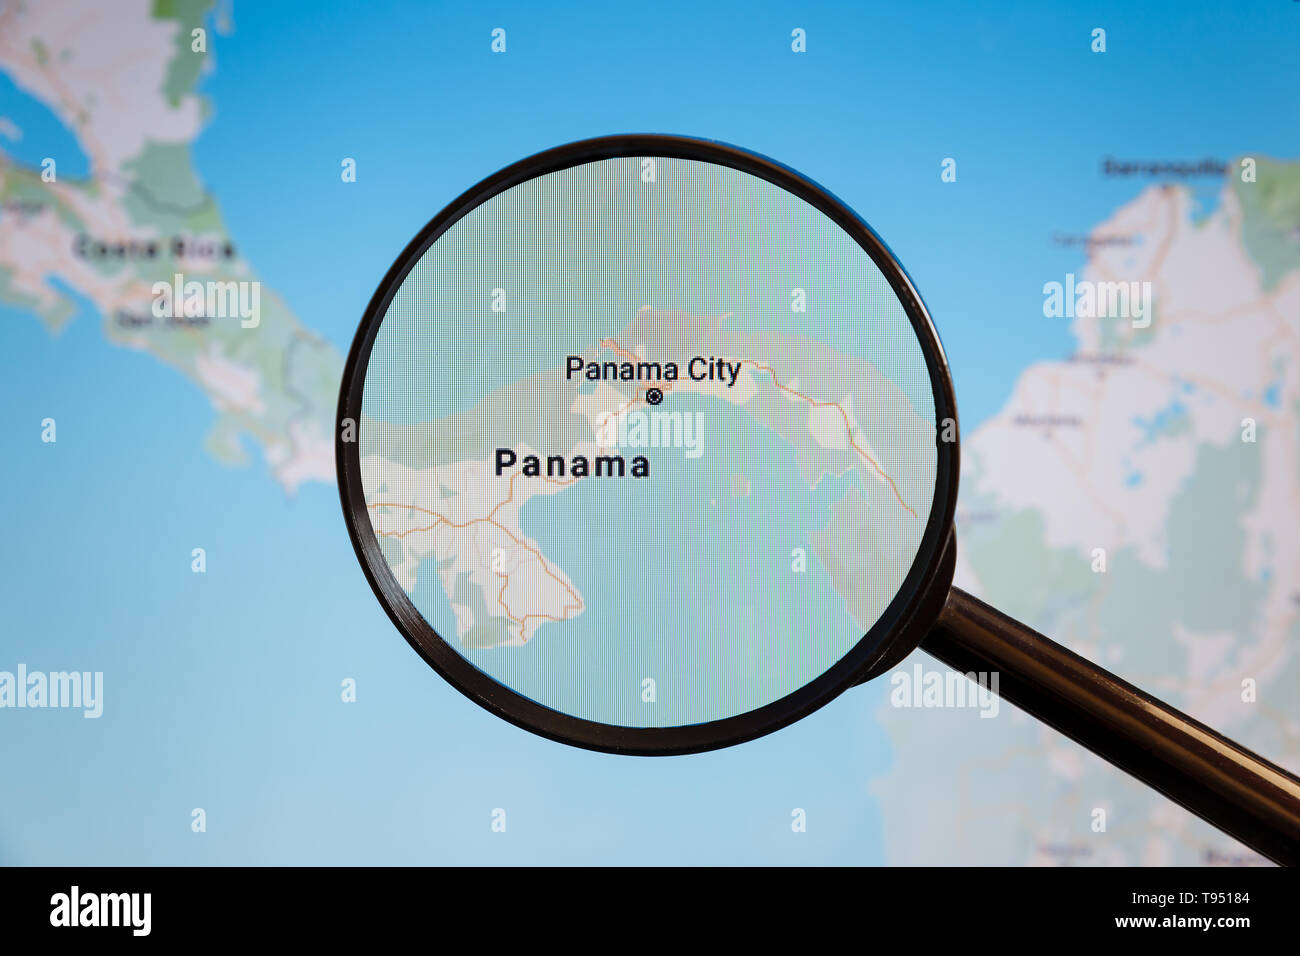 Image of: Panama City Panama Political Map The City On The Monitor Screen Through A Magnifying Glass Stock Photo Alamy